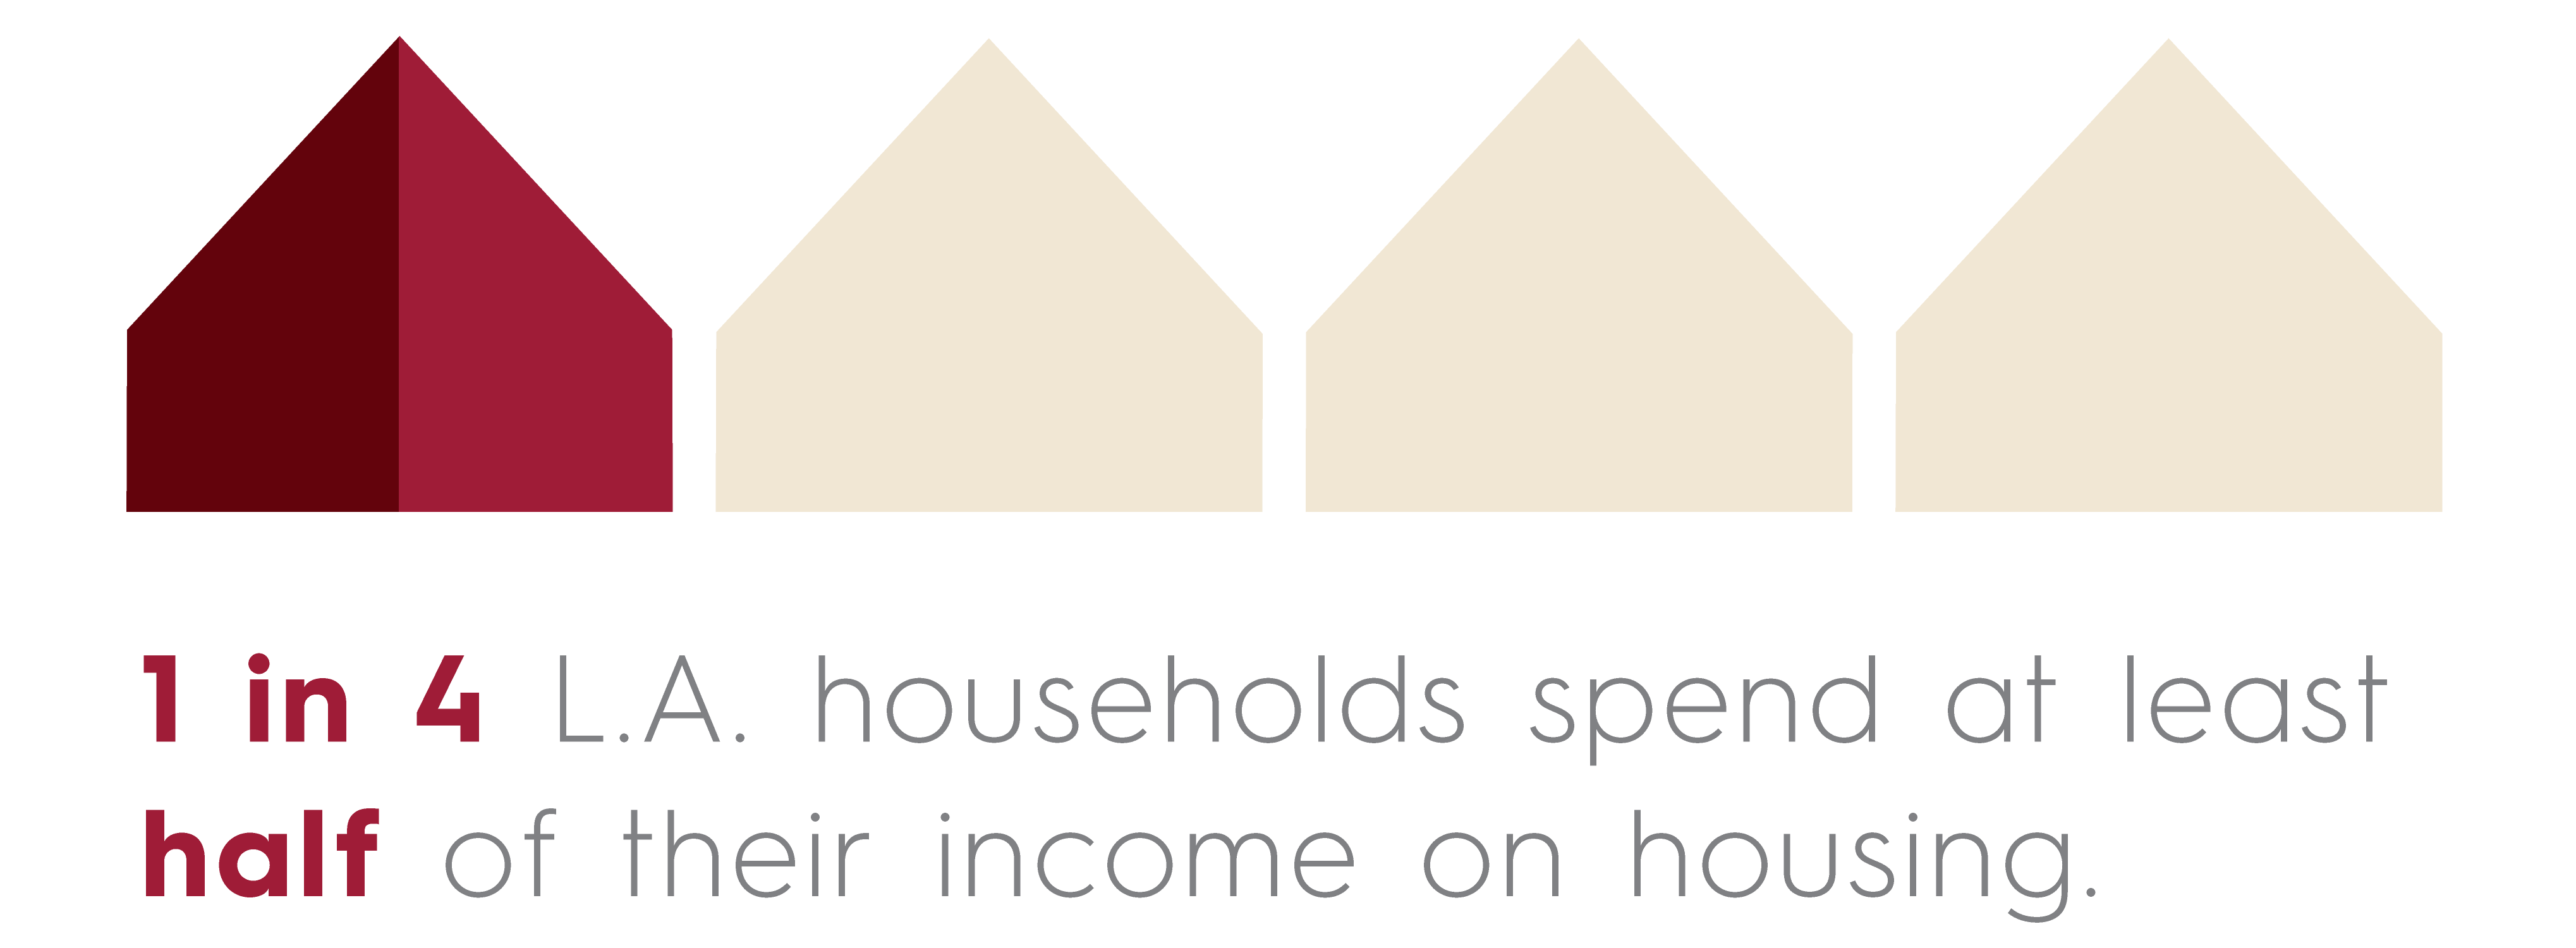 1 in 4 L.A. households spend at least half of their income on housing.